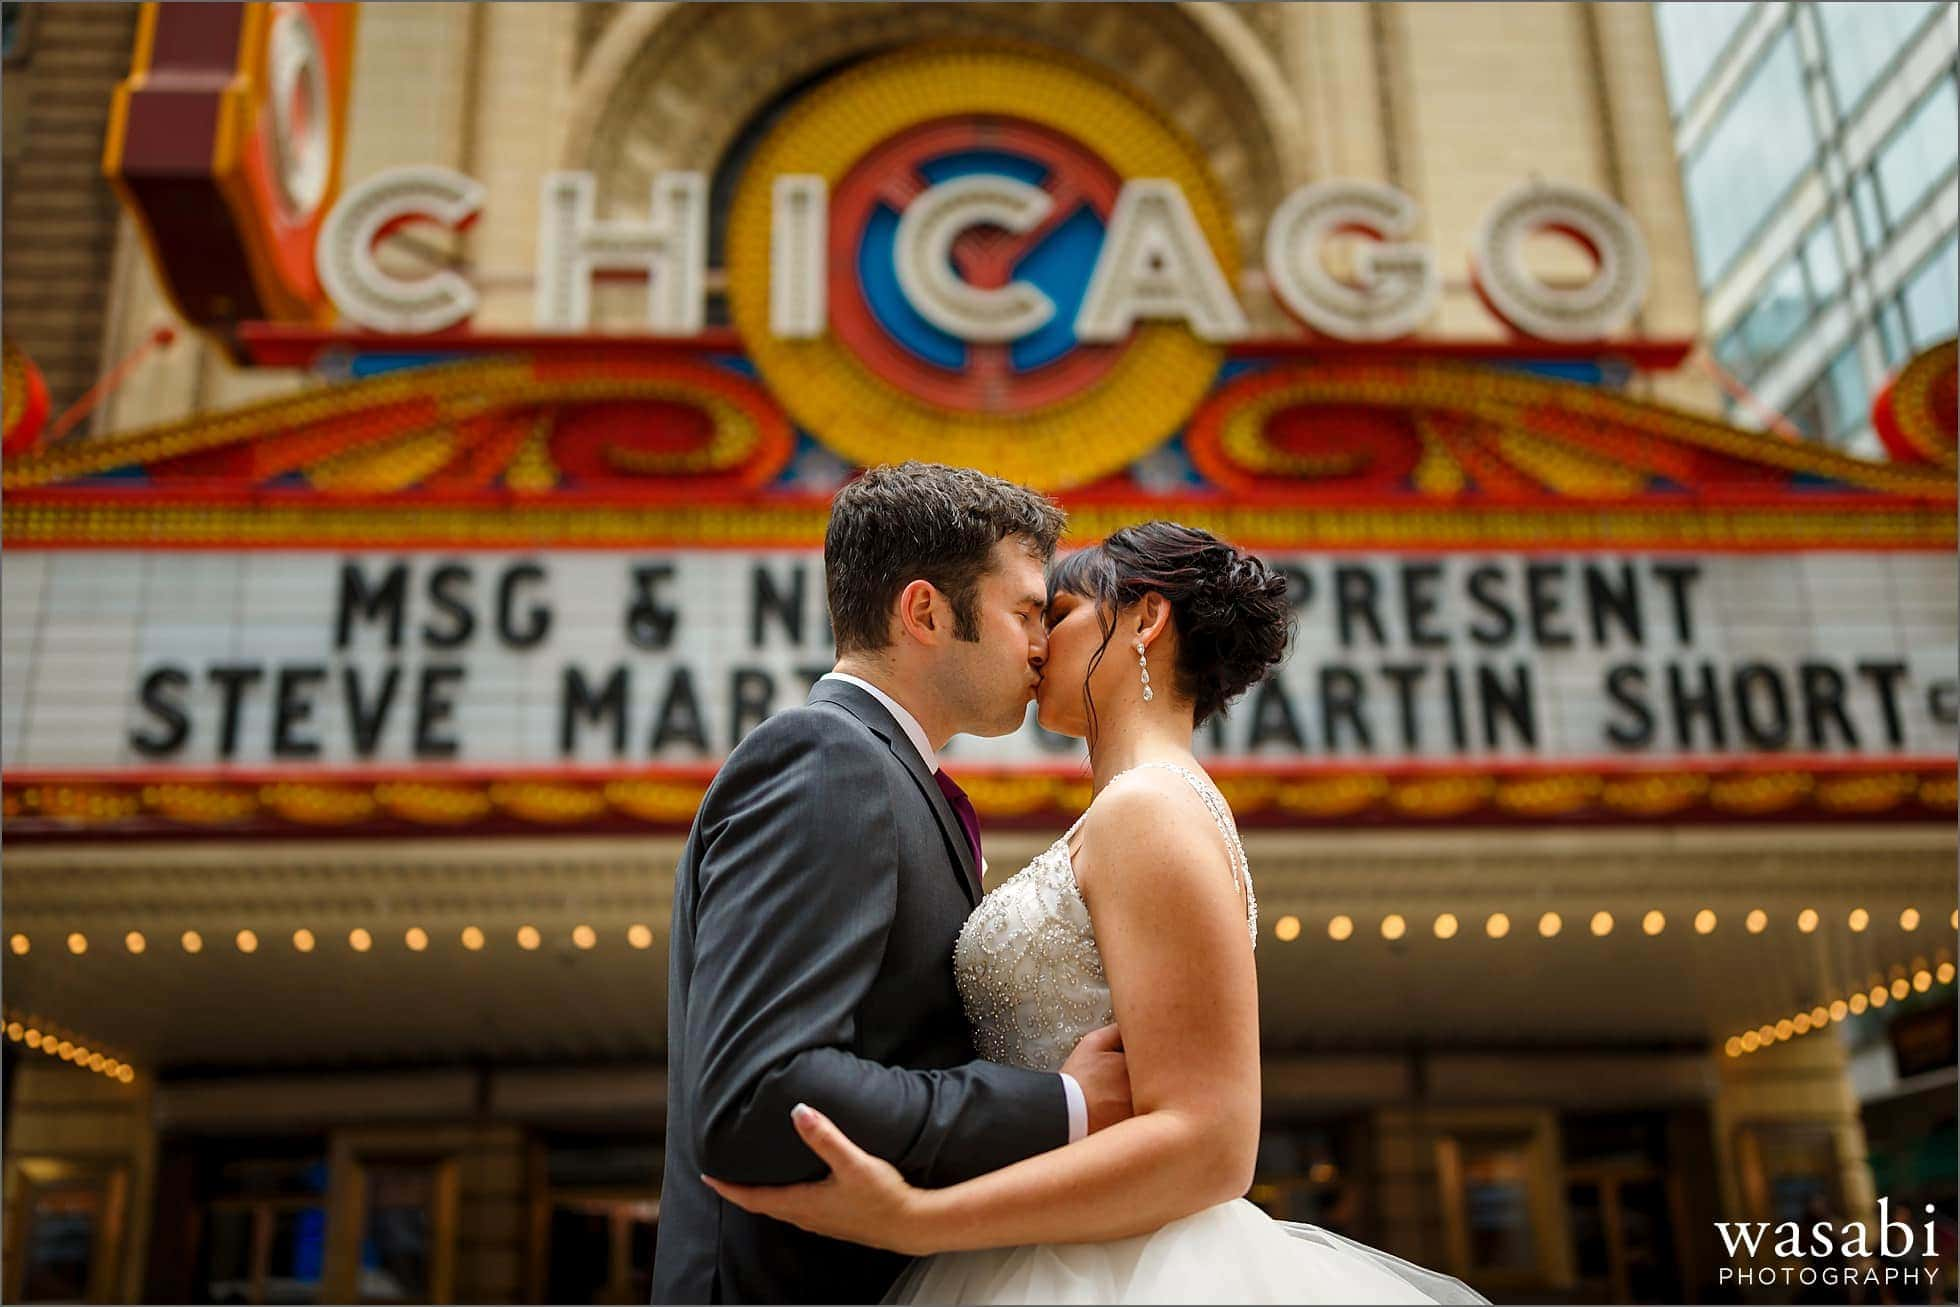 bride and groom kiss for wedding photo in front of Chicago Theatre sign